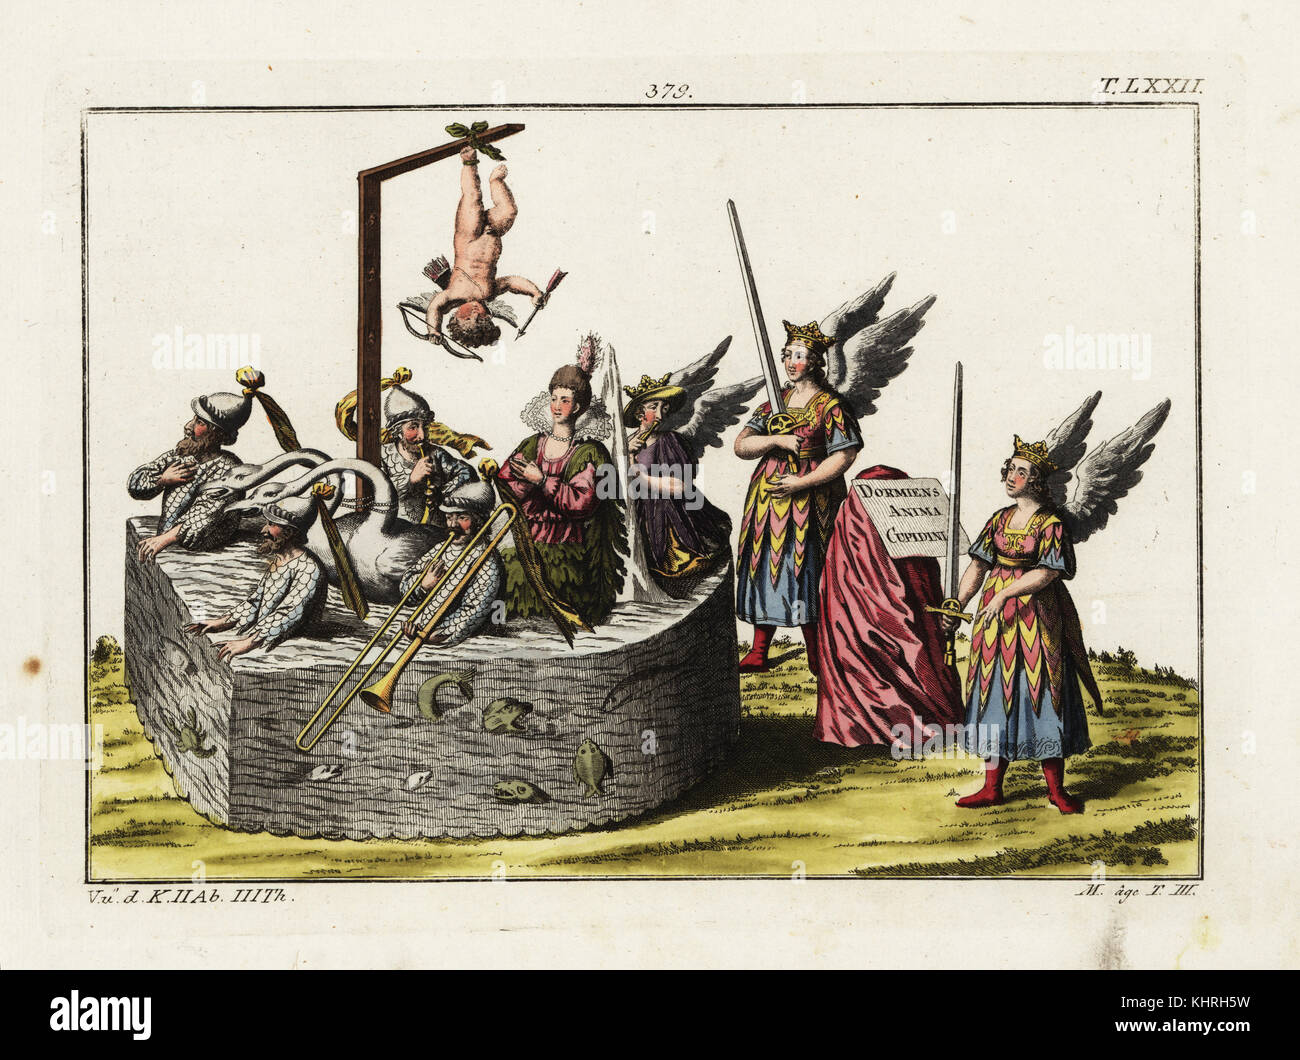 A Wassermaschine or water-carriage with musicians in fishscale costumes and a sleeping Cupid hanging by one leg. - Stock Image